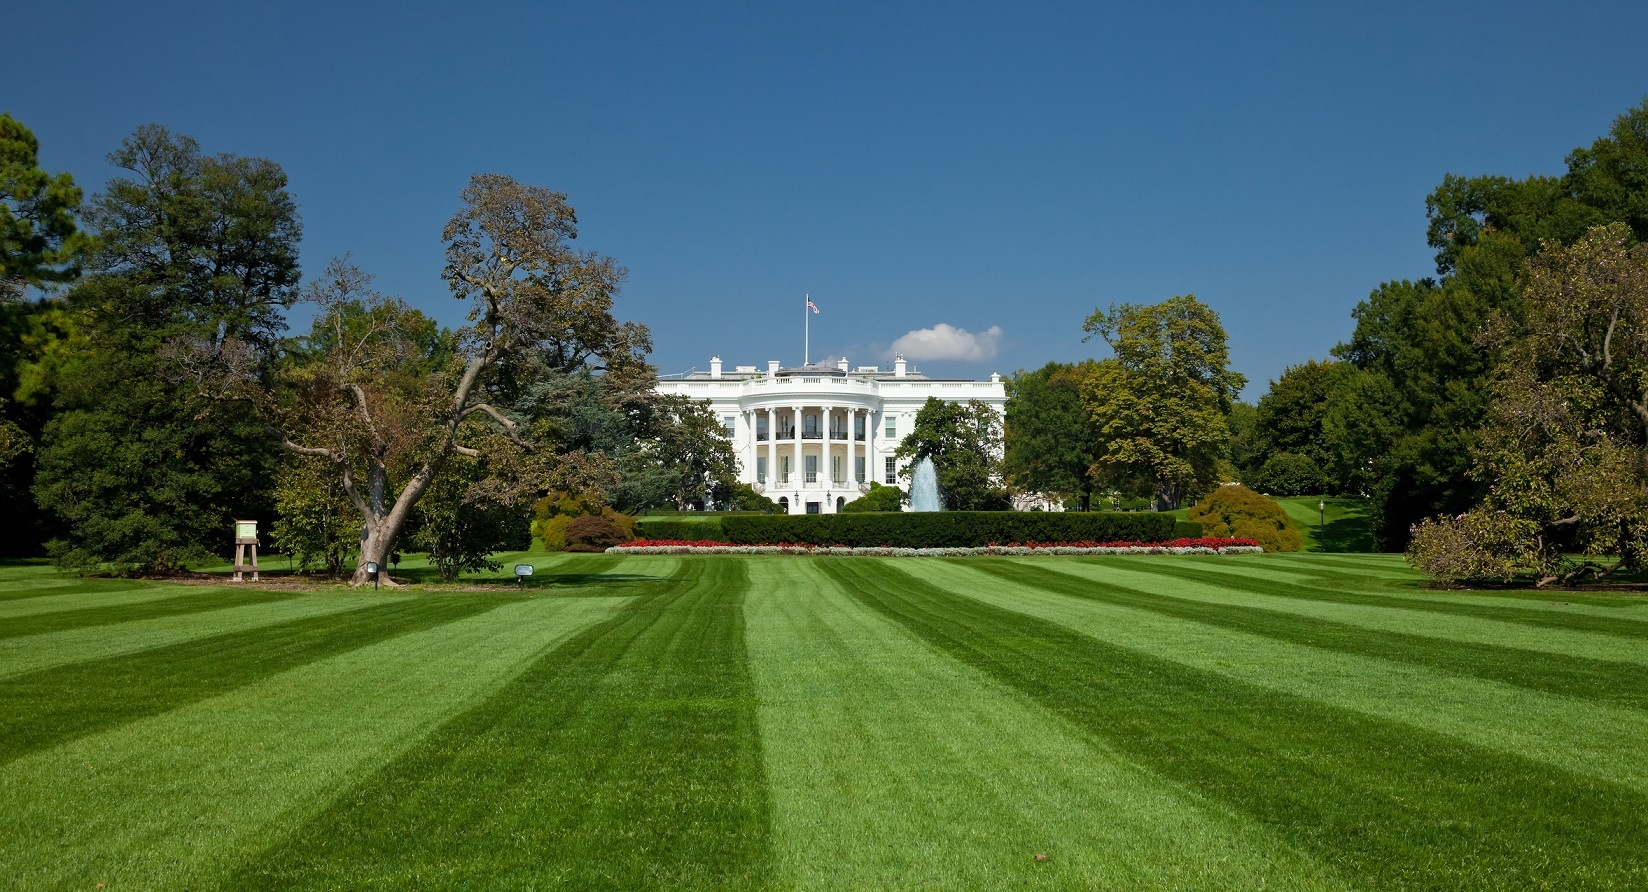 Shocking Things You Didn't Know About the White House Grounds